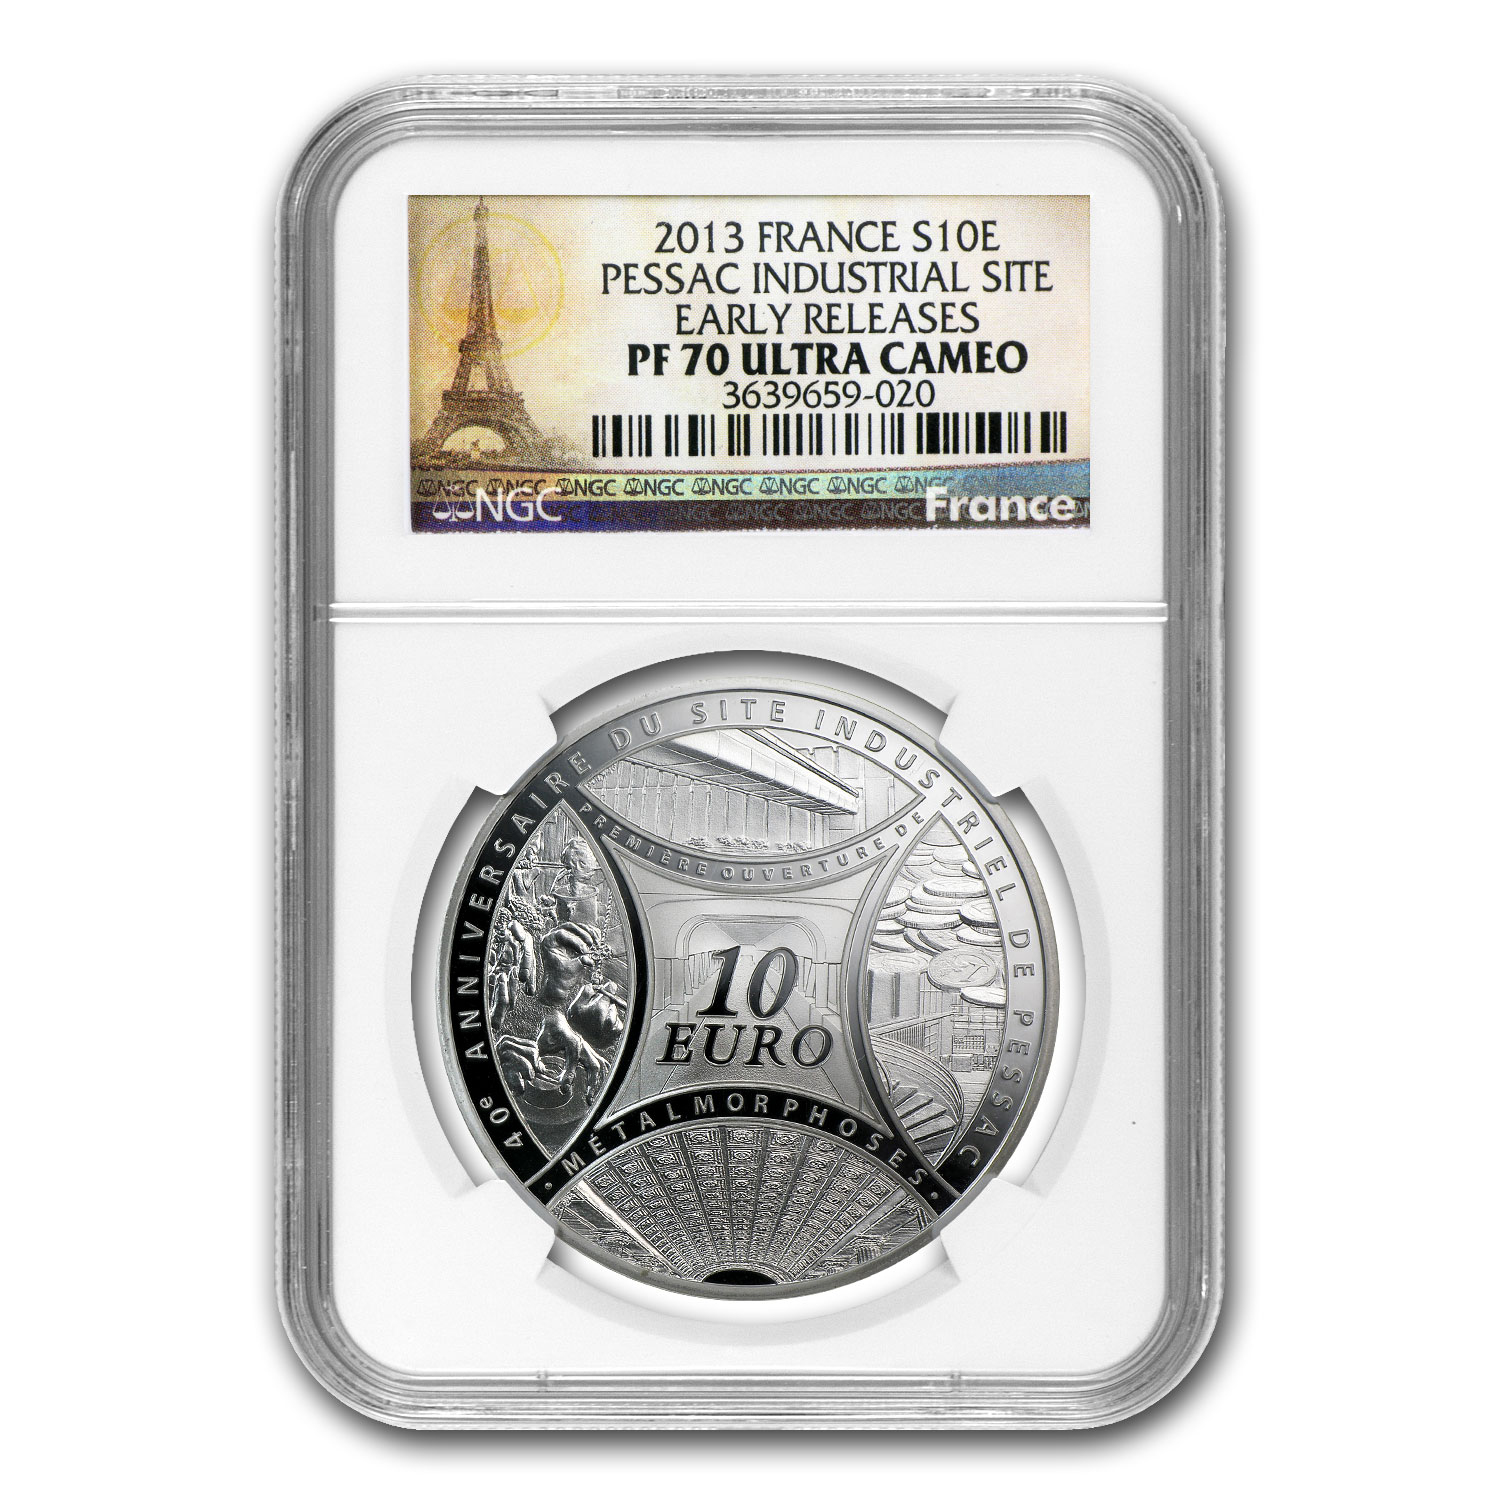 2013 France Silver €10 Pessac's Industrial Site PF-70 NGC (ER)